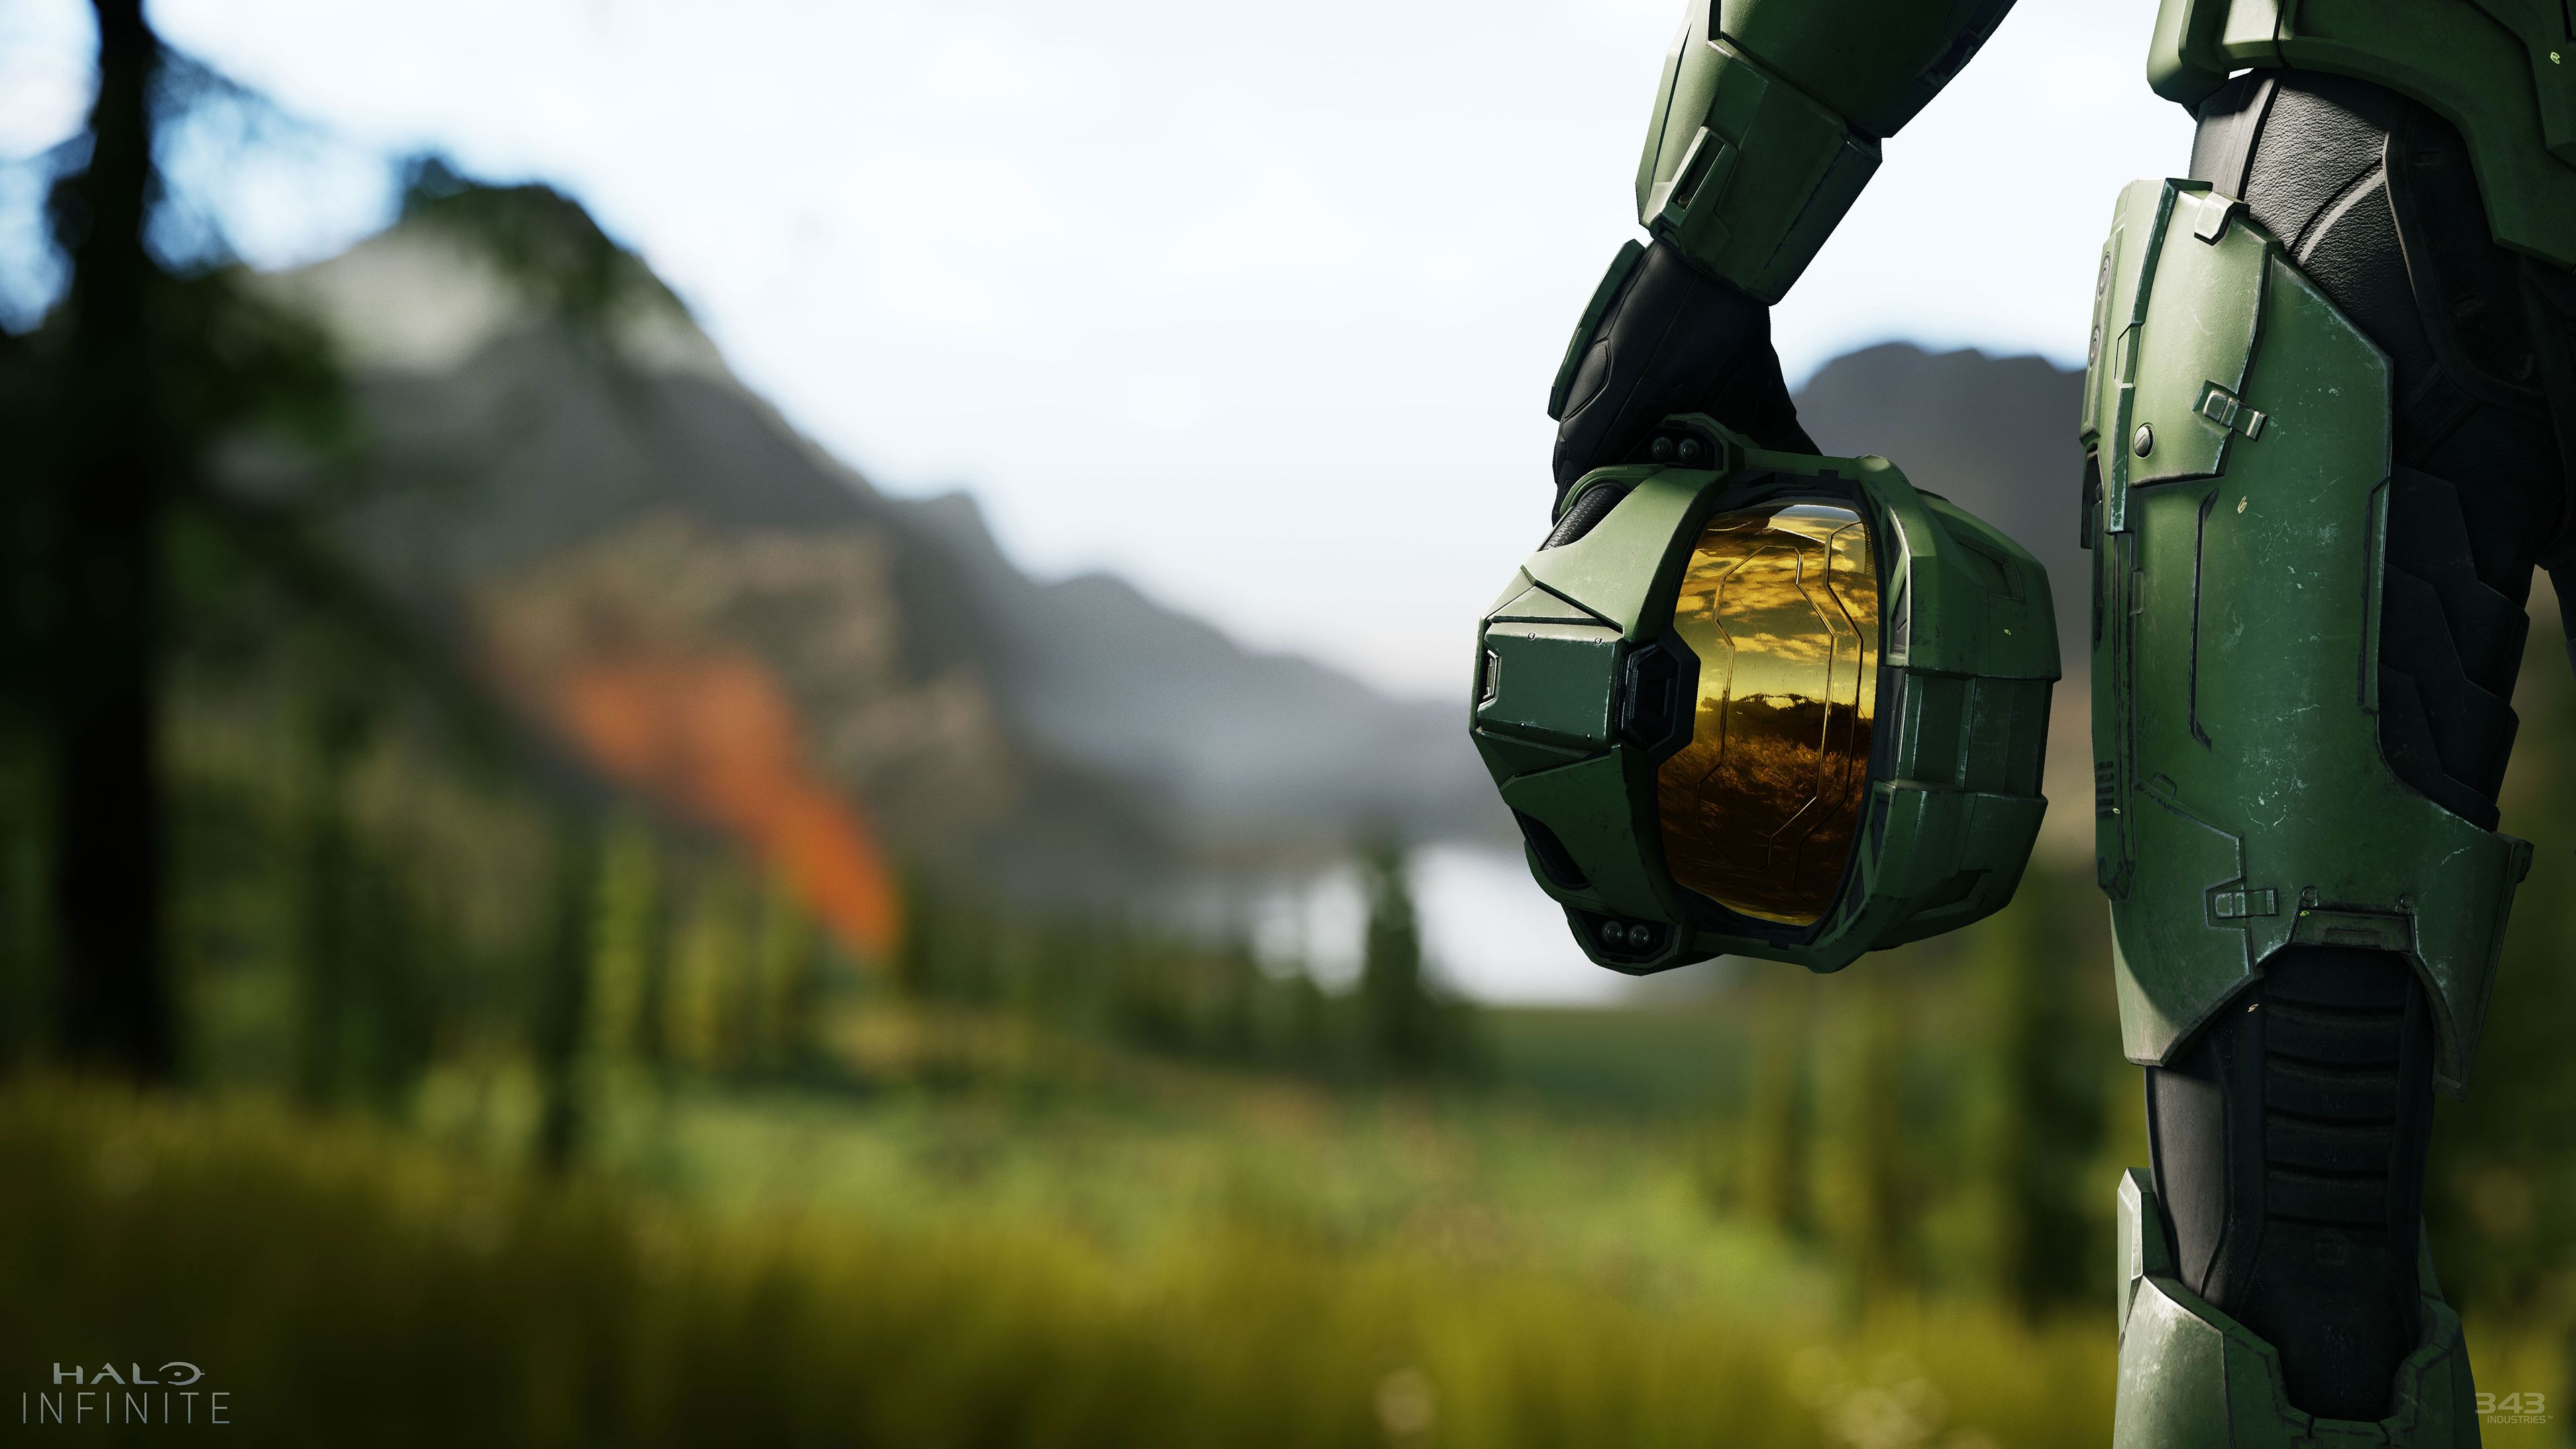 Xbox's Stunning E3 Show Finally Gave Fans What They Wanted, A New Halo - HuffPost